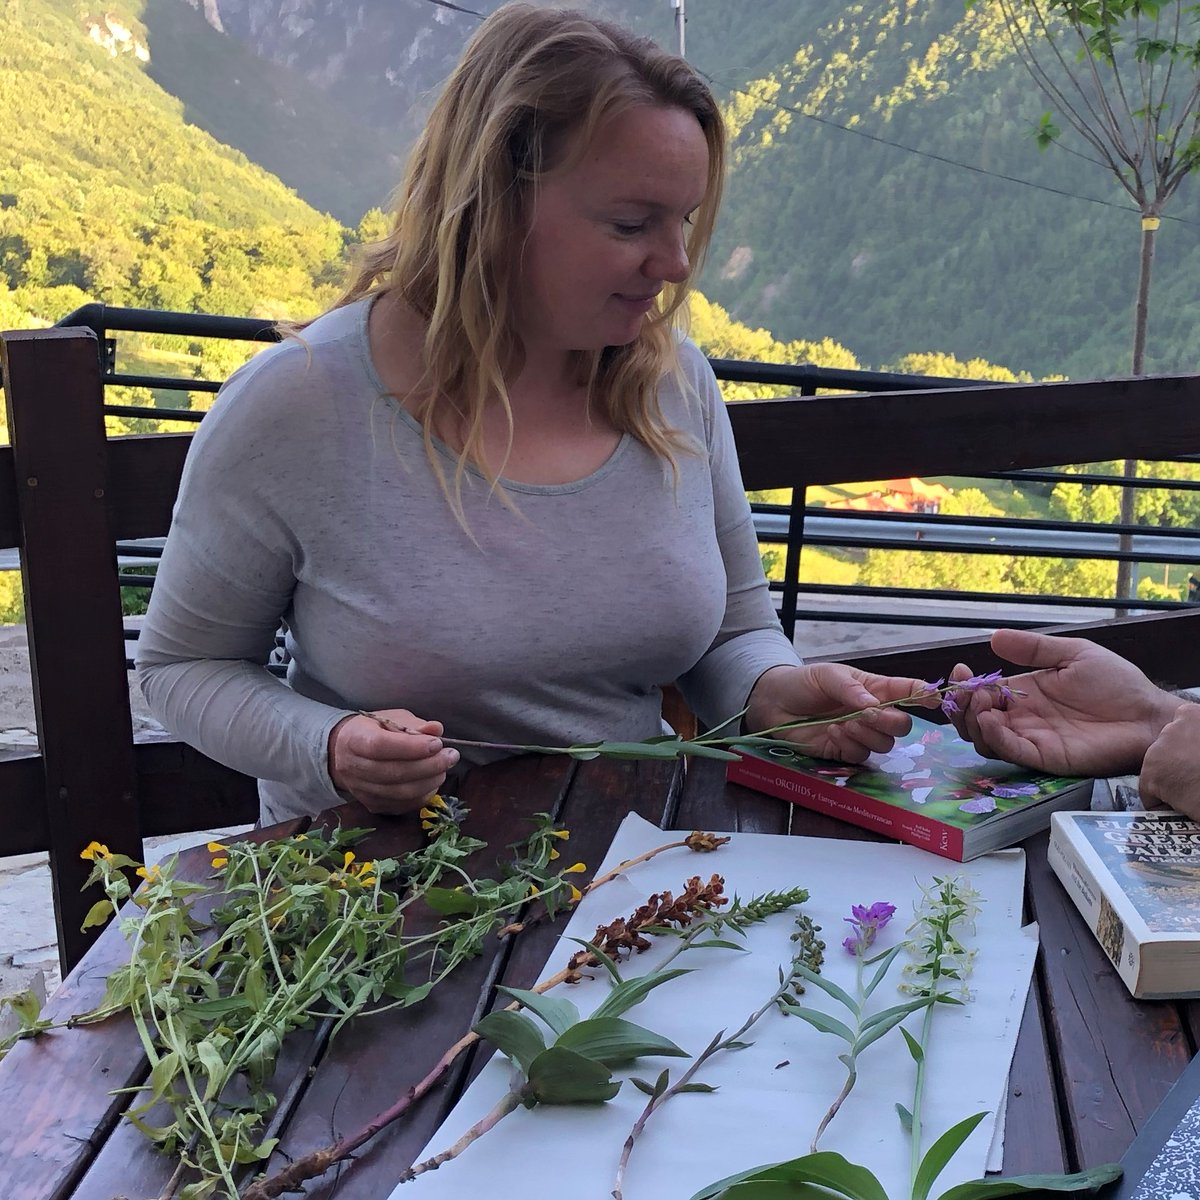 Hey @emorycollege Food Health and Society class students! This is the episode I mentioned in class today that covers the science behind edible terrestrial orchids in the Balkans! Check it out! #wildfood #FoodiePharmacology